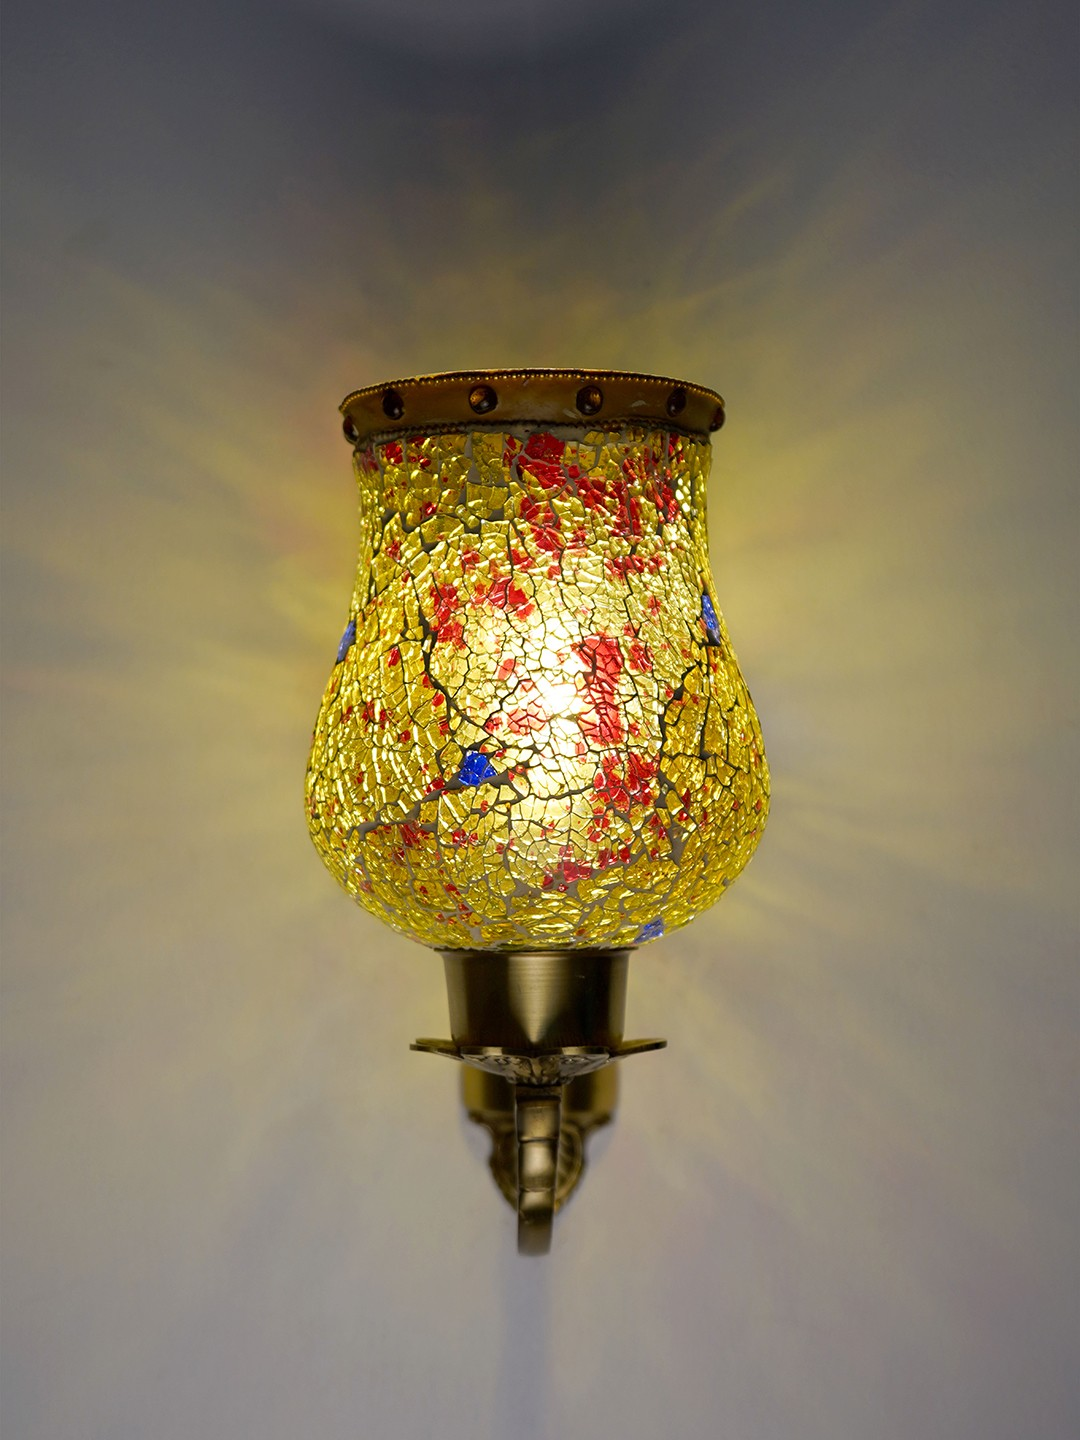 Gold Antique Designer Wall Lamp/ Wall Light for Dining Room, Bedroom, Living Room Wall Lamp with Designer Glass and Brass Material